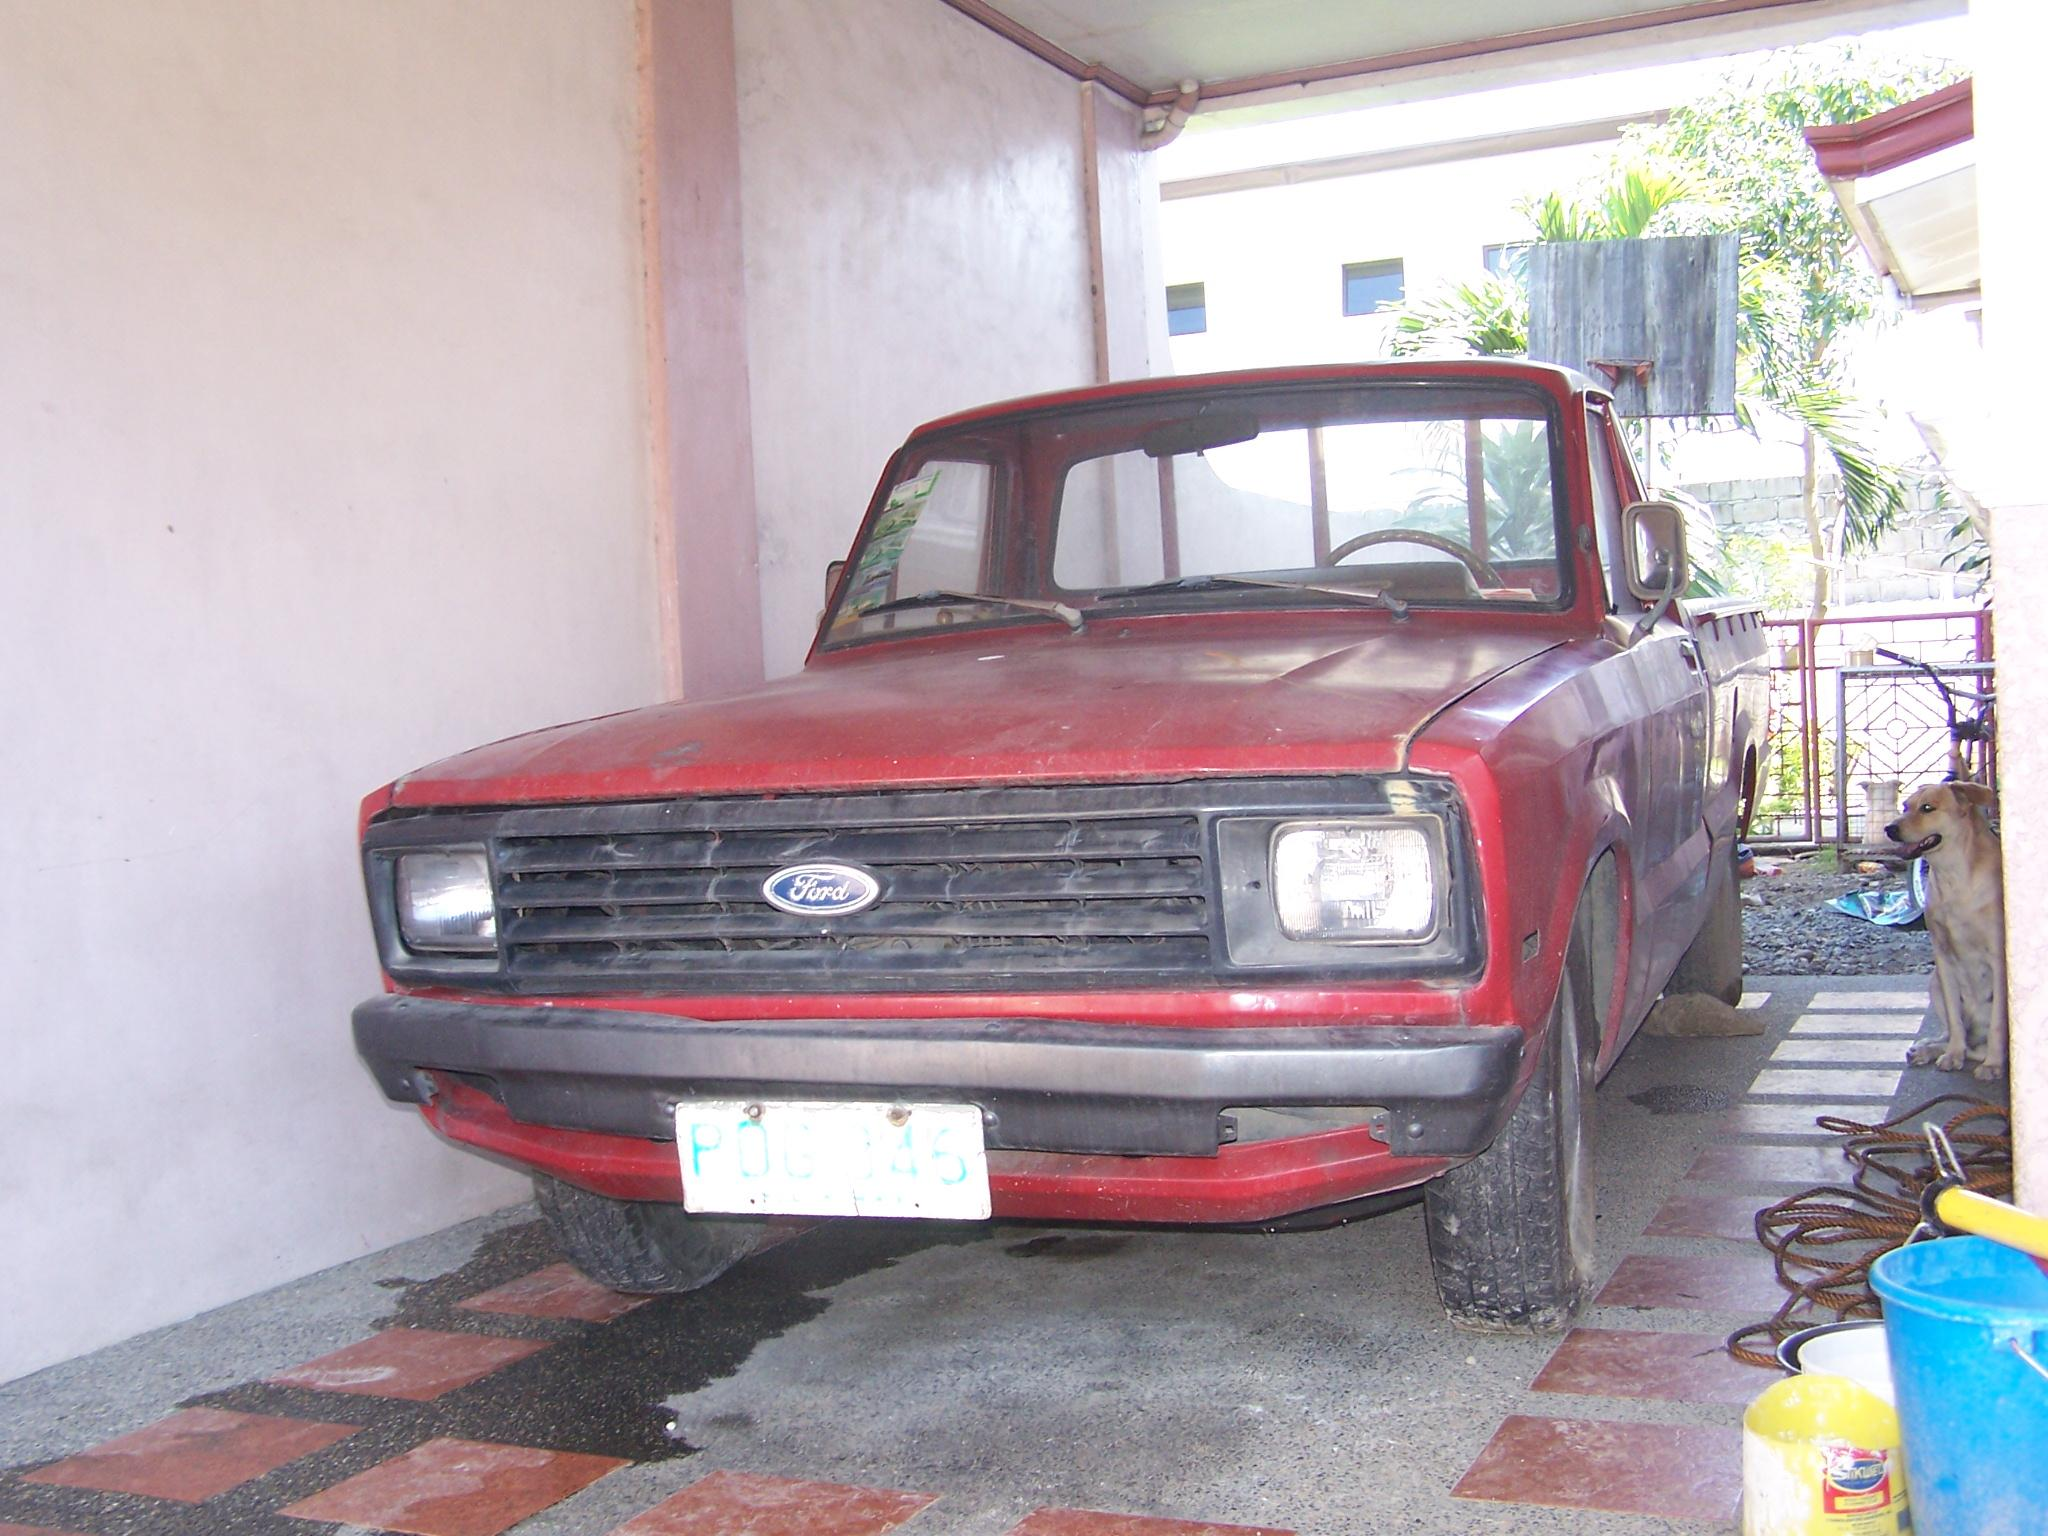 mjcapco_511's 1983 Ford Courier